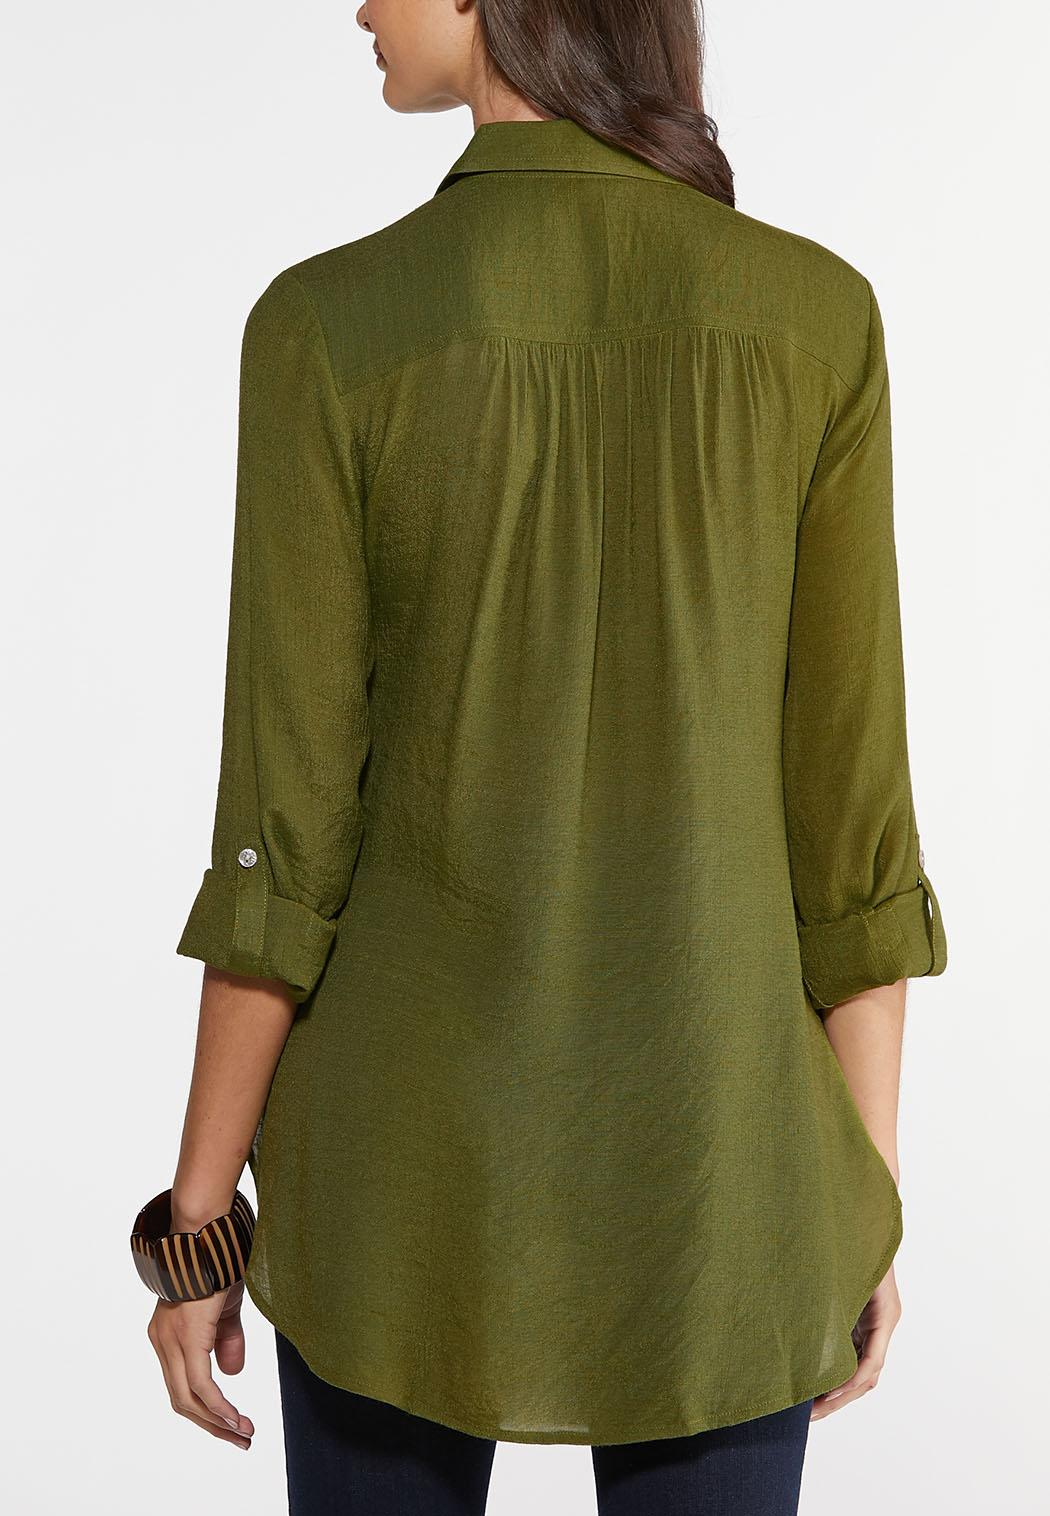 Textured High-Low Tunic (Item #43936198)